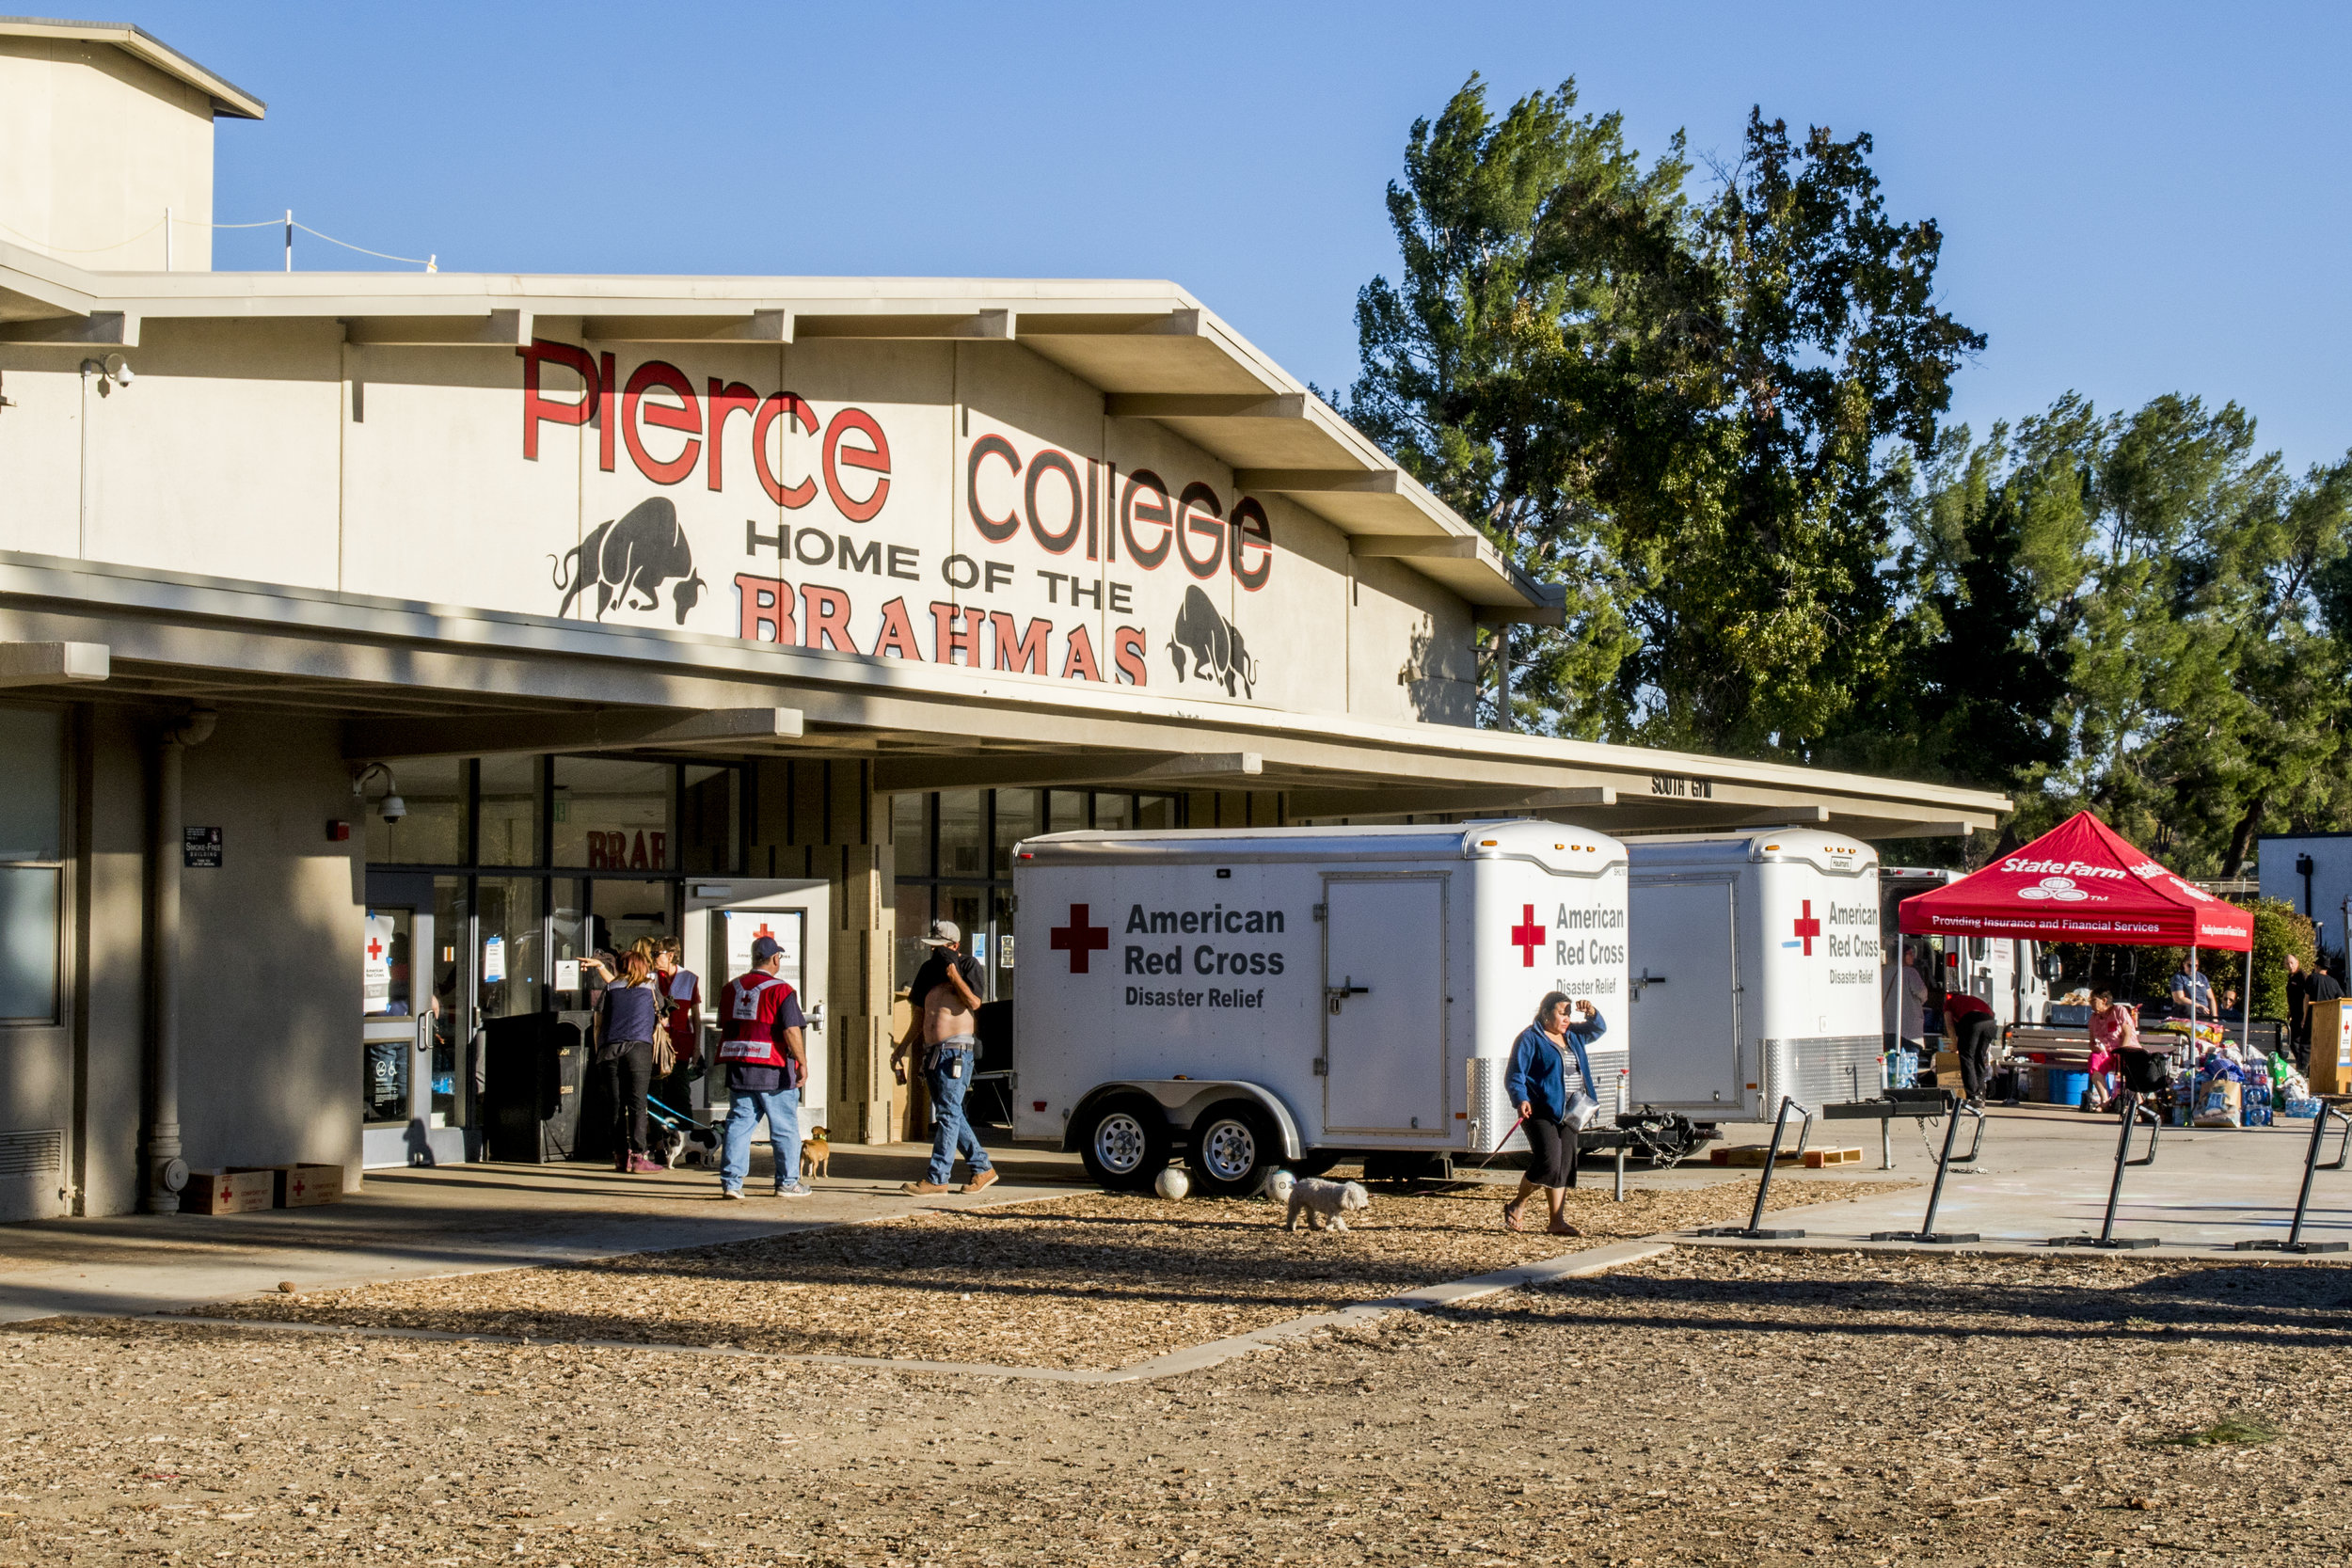 The American Red Cross and State Farm Insurance have set up outside of Pierce Colleges South Gym in Woodland Hills, California on November 9, 2018. The organizations are at the college to provide supplies and support to any person or animal seeking refuge from the Woolsey Fire. (Zane Meyer-Thornton/Corsair Photo)